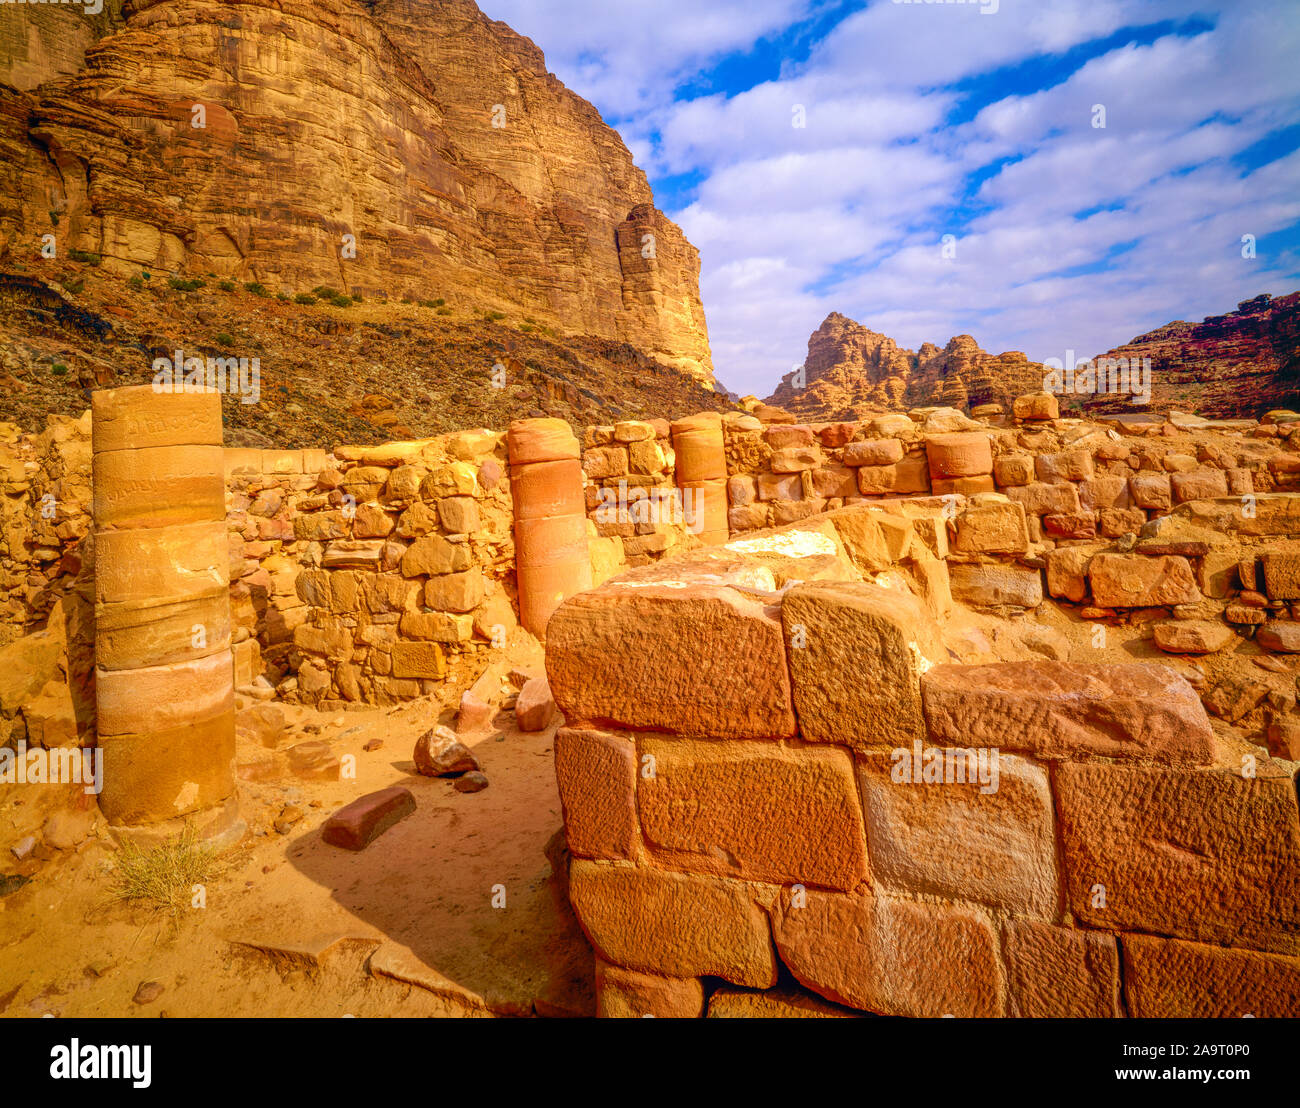 Nabataen Temple ruins, Wadi Rum, Jordan, Two thousand-year old ruins Jebel Rum Stock Photo